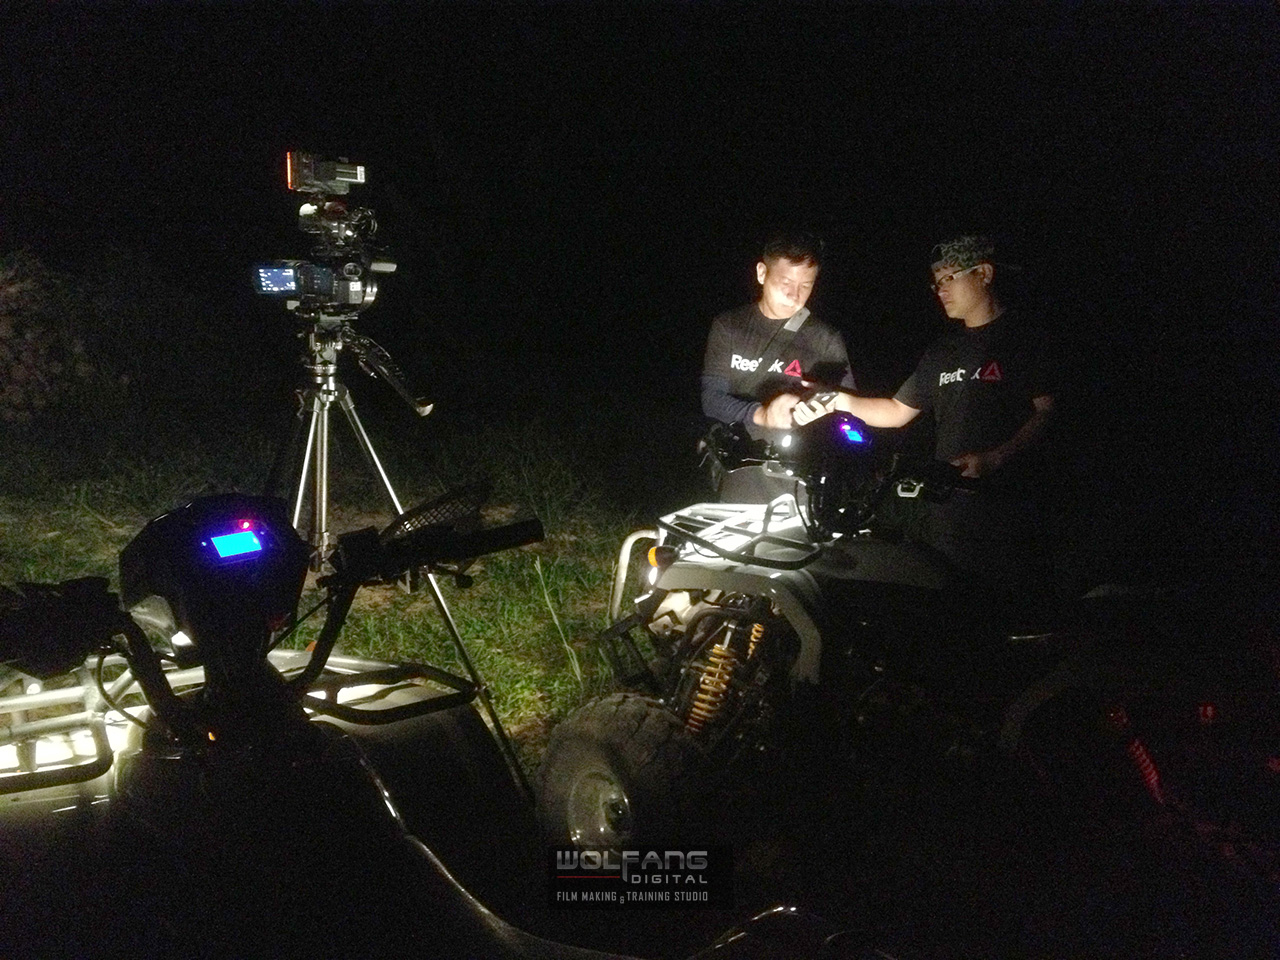 Shooting 4K videos in near total darkness with the sony ax100 and z96 led